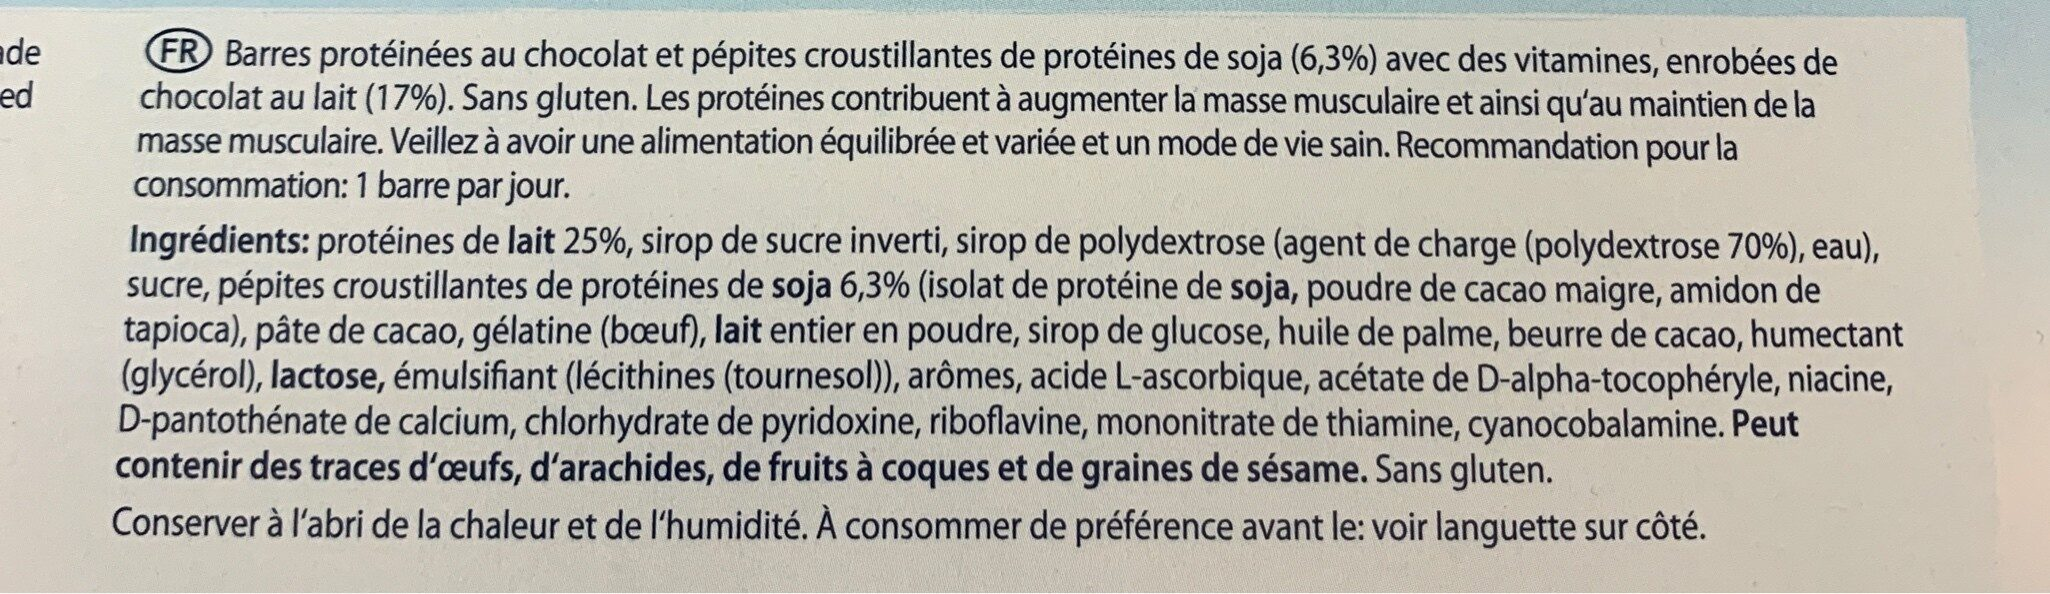 Barre Proteine - Ingredients